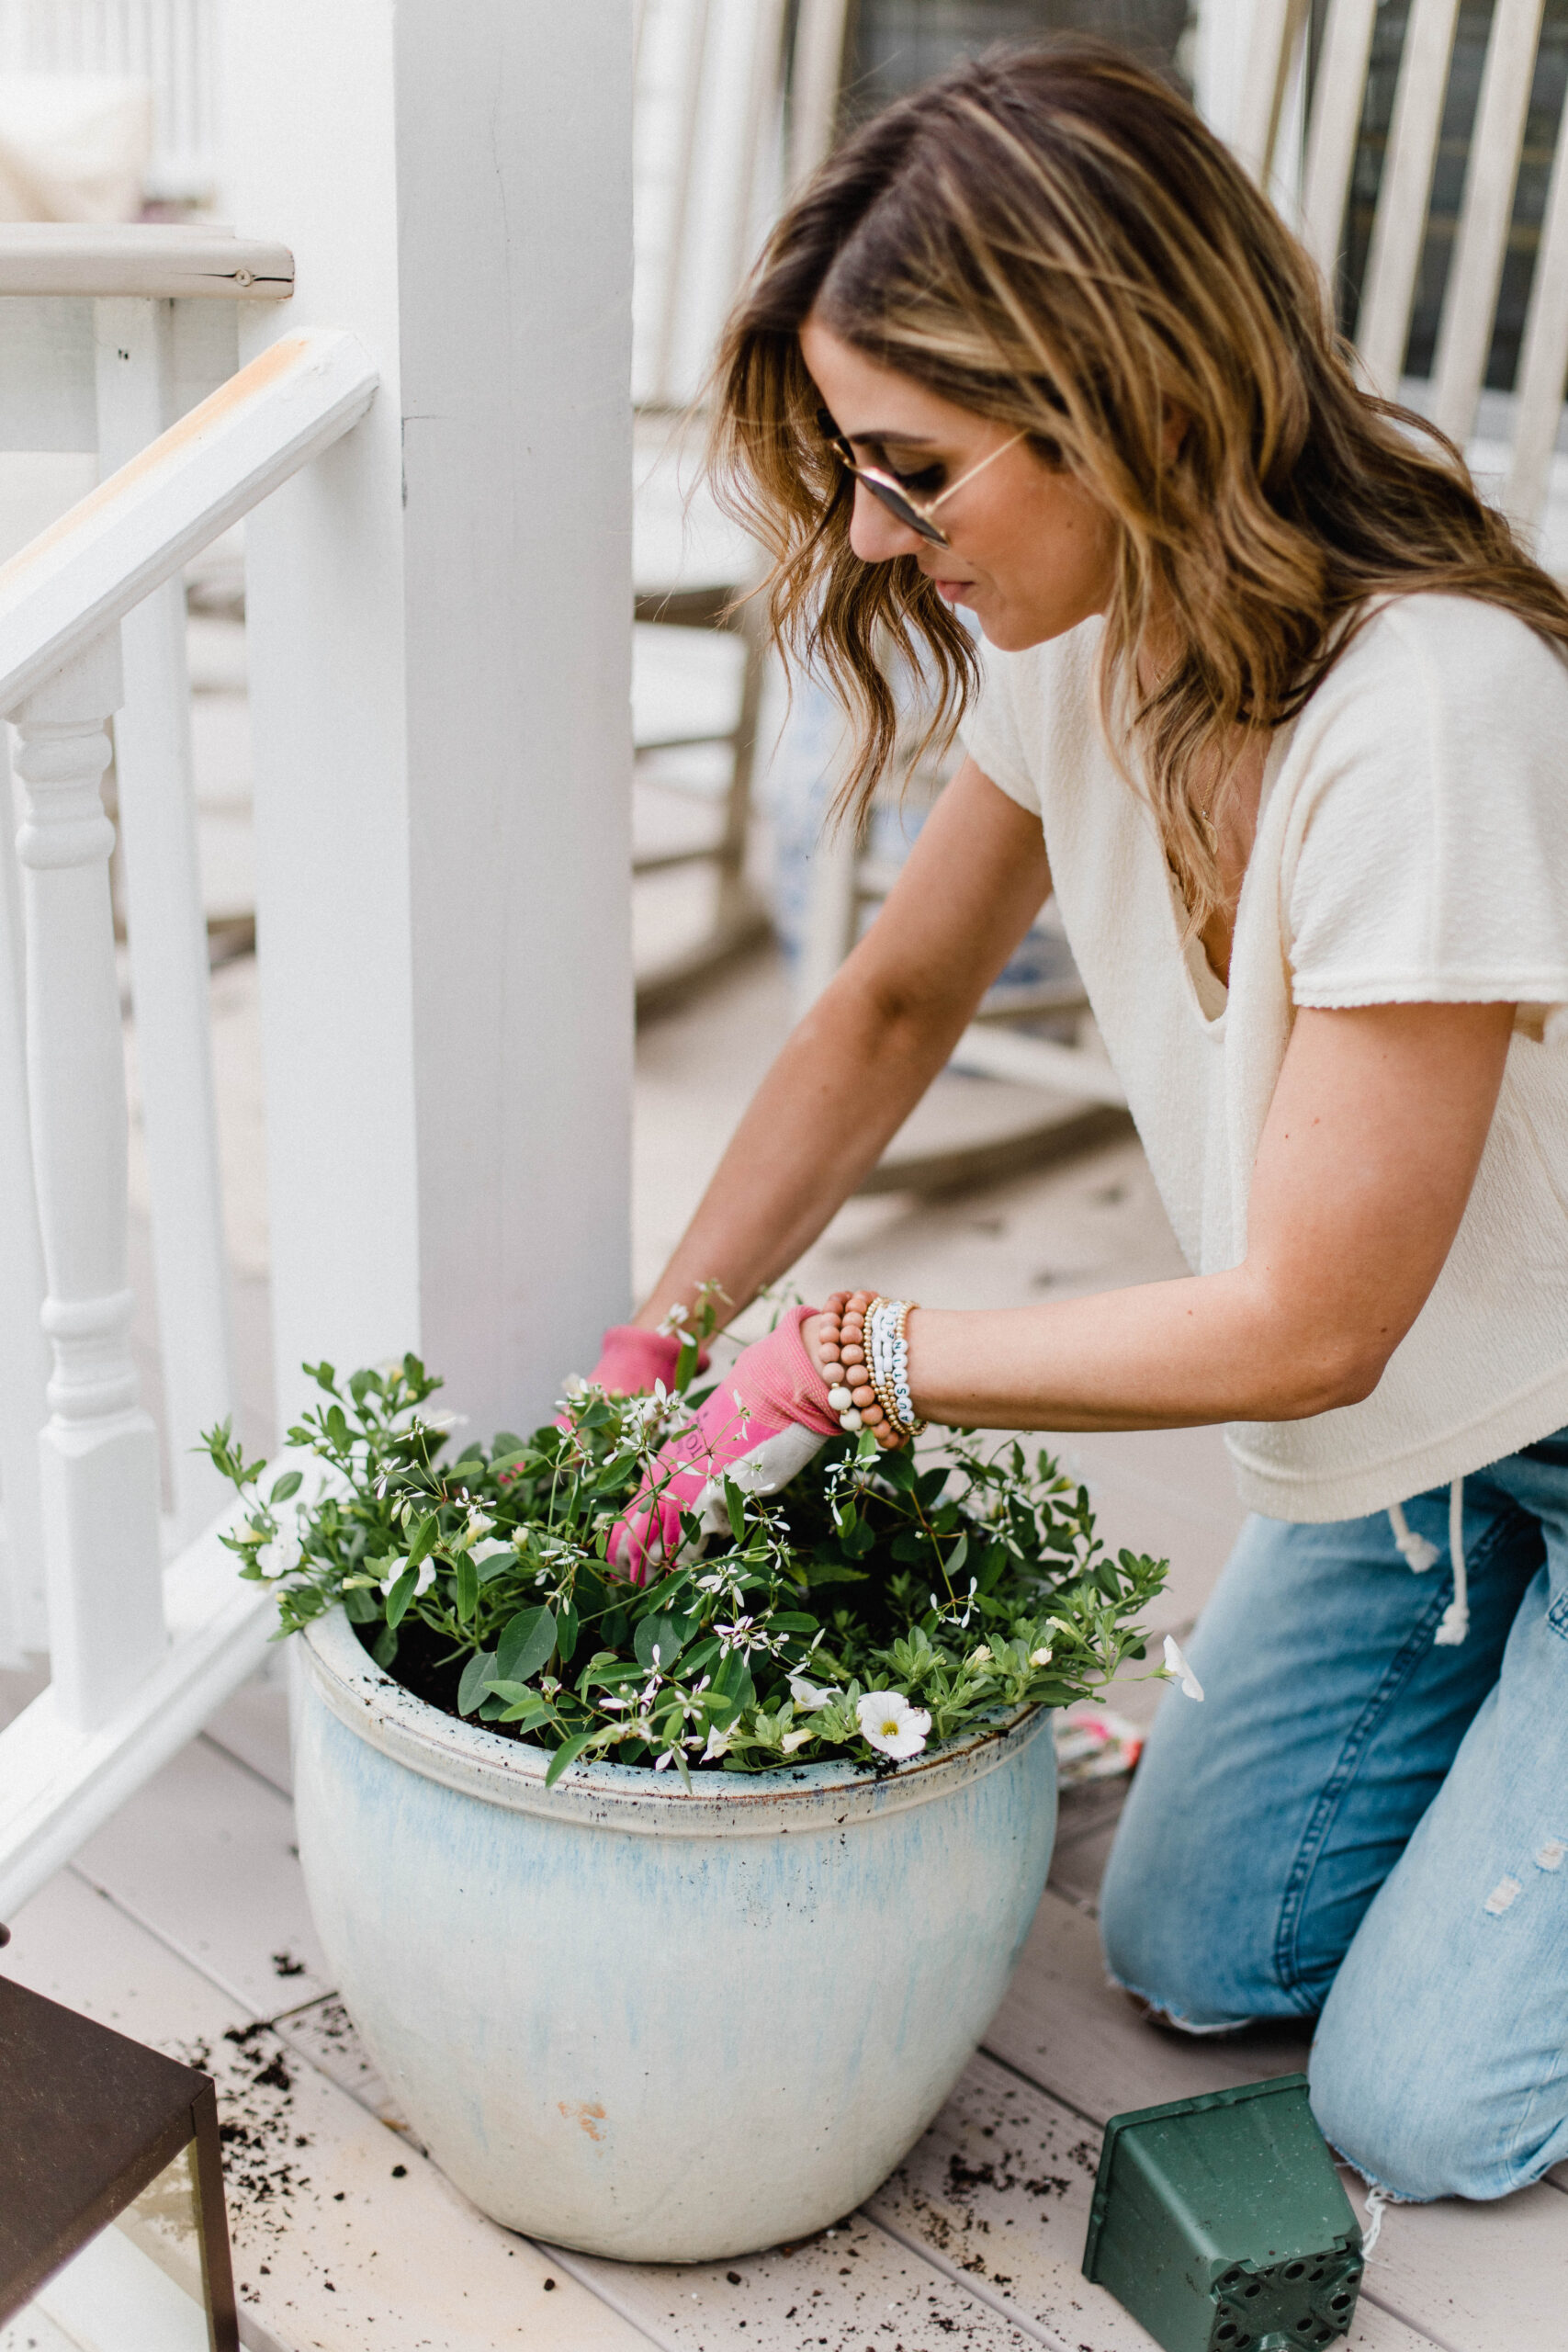 Connecticut life and style blogger Lauren McBride shares five reasons to wear SPF, including a new, hydrating and non-greasy sunscreen.